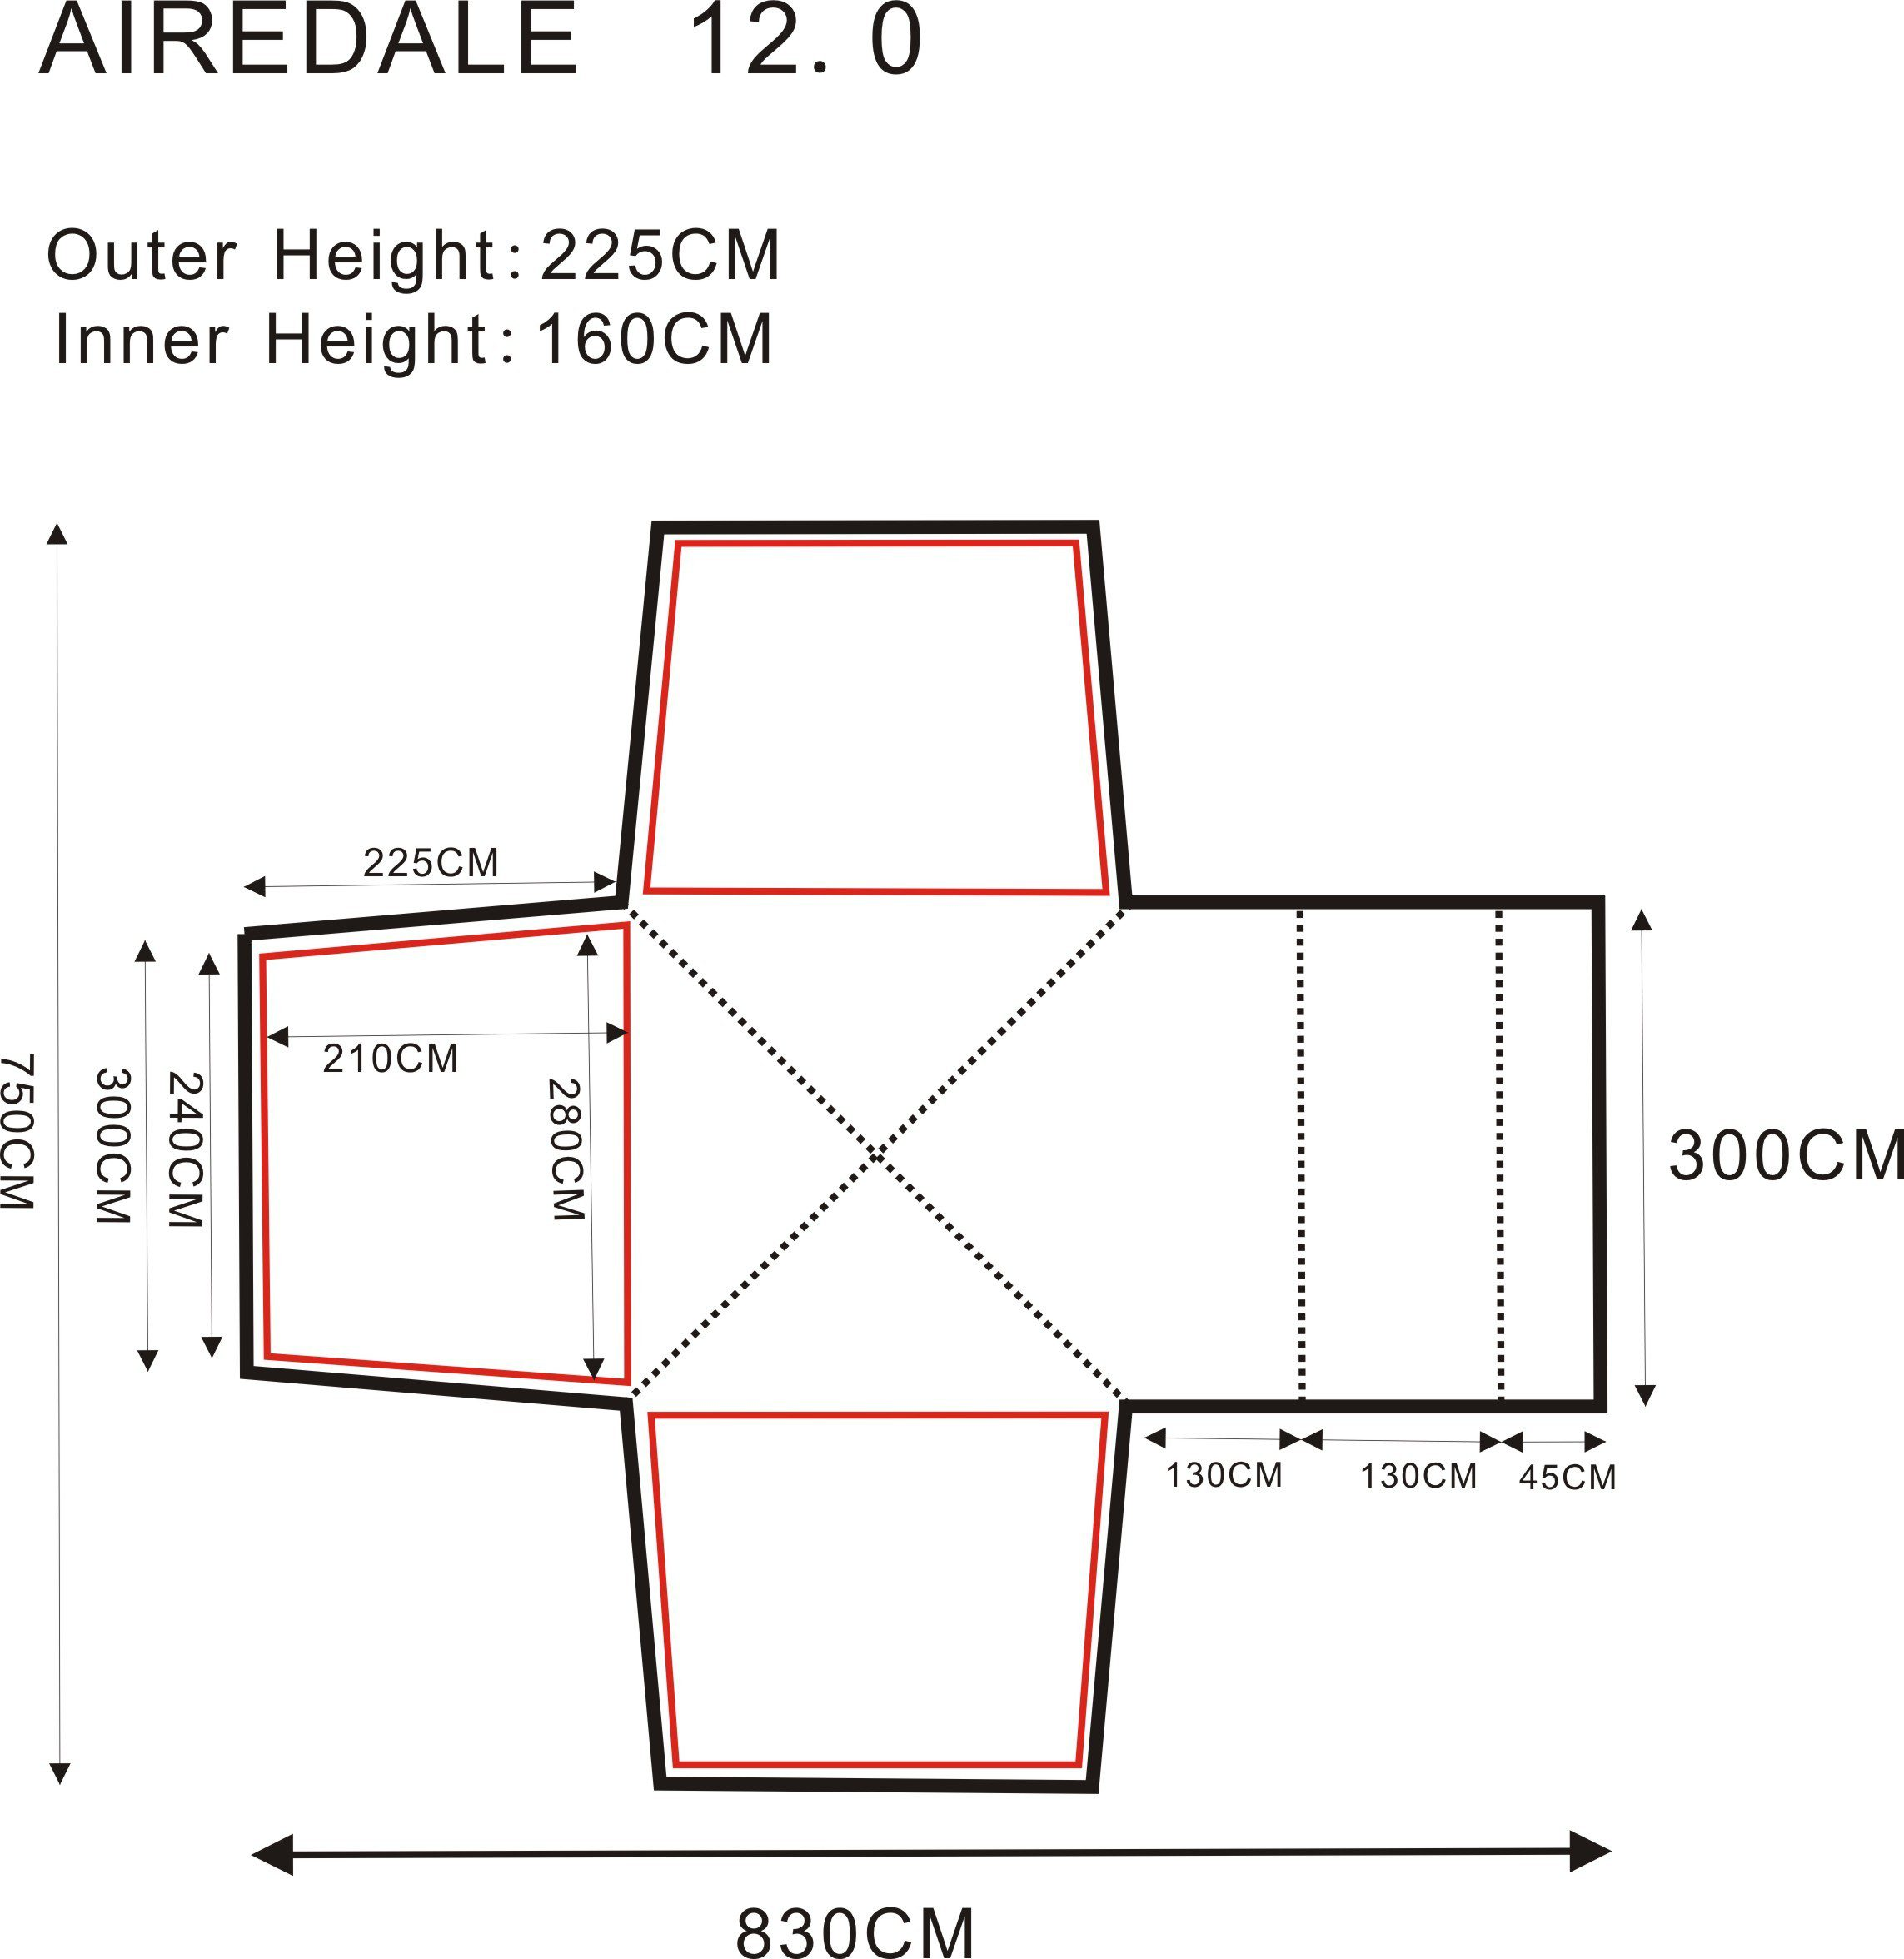 Outdoor Revolution Airdale 12 Tent 8